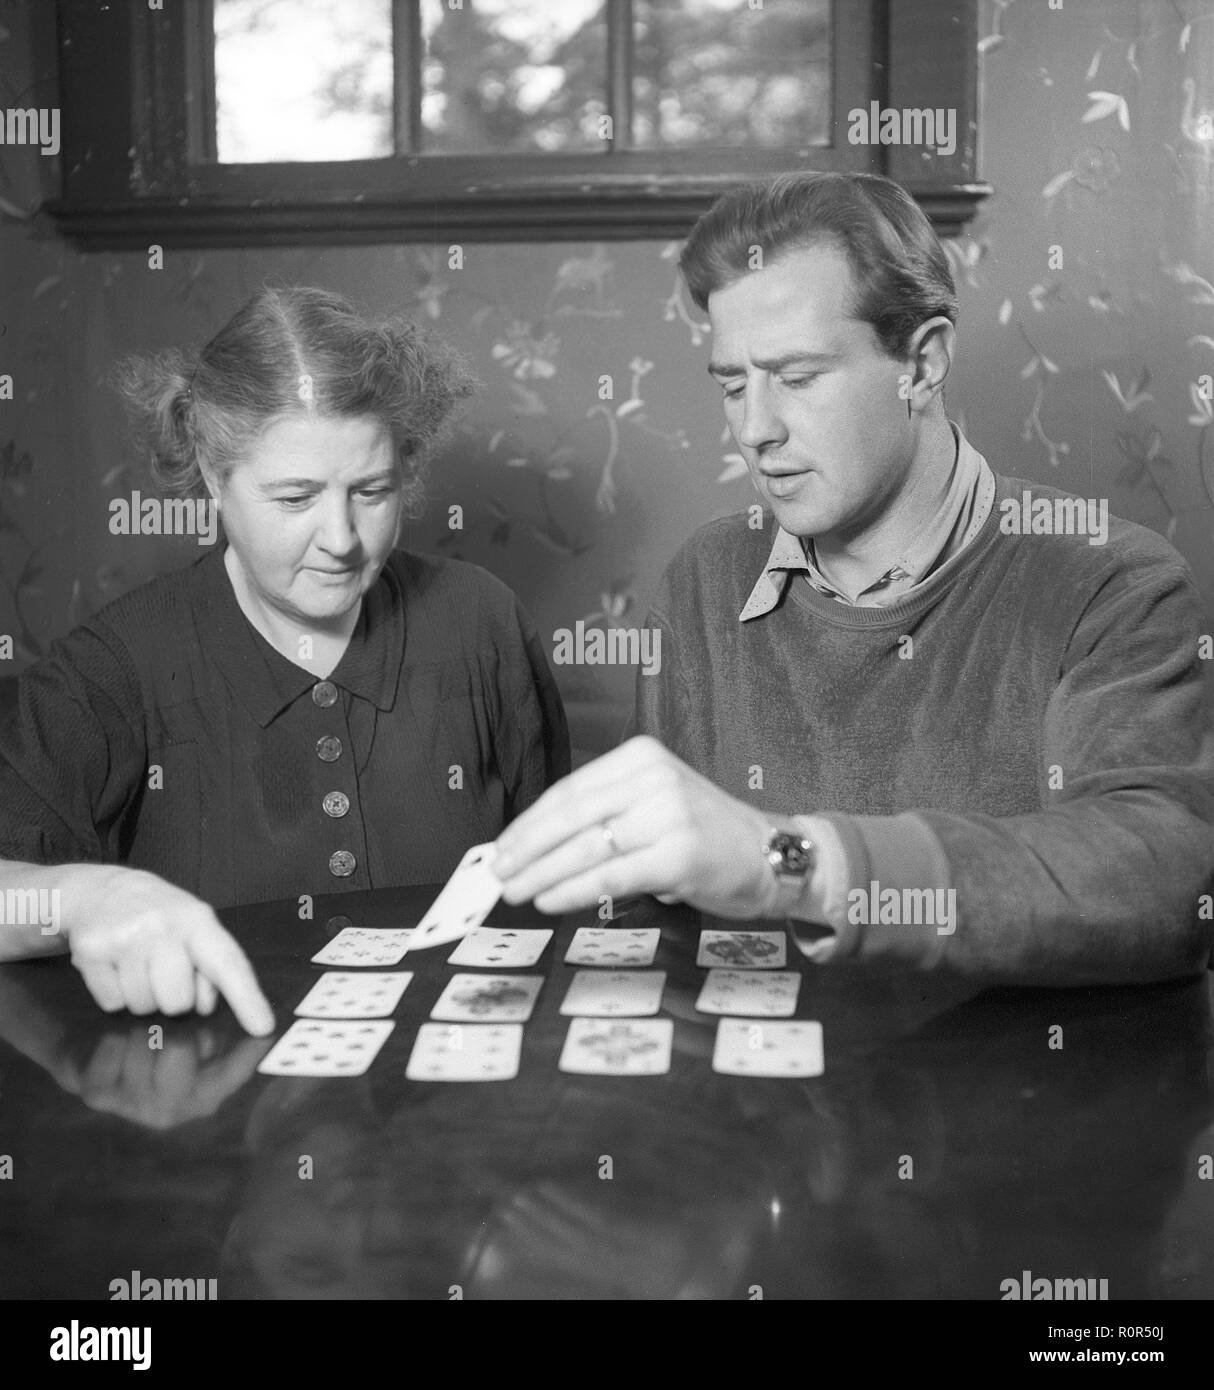 Playing solitaire in the 1940s. Swedish European boxing champion Olle Tandberg , 1918-1996. Pictured her with his mother playing solitaire. Sweden 1940s. Photo Kristoffersson Ref B140-1 - Stock Image